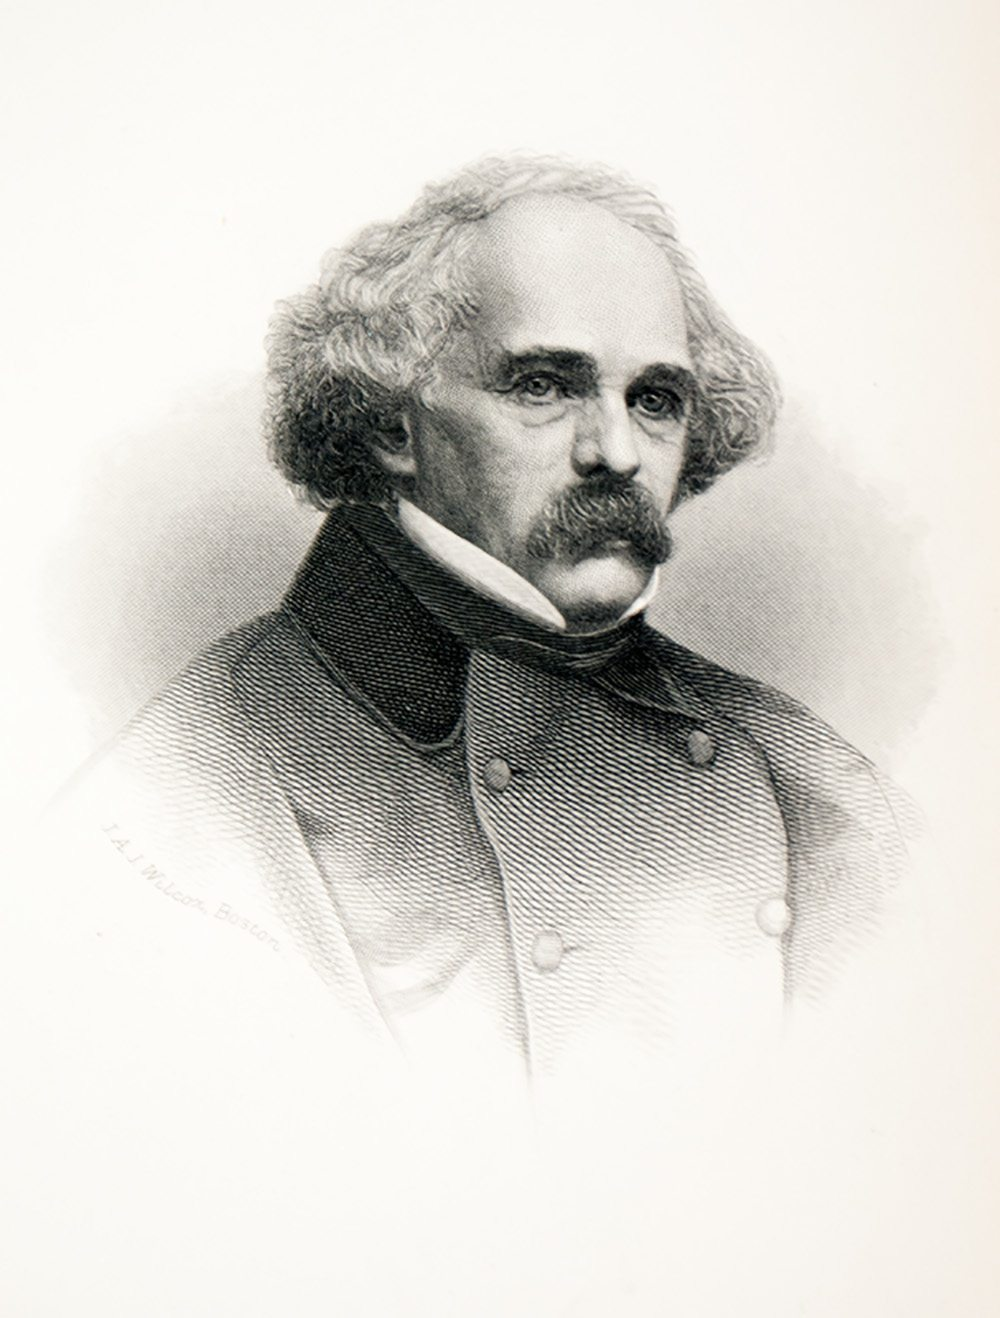 the life of nathaniel hawthorn and his writing style Did religion affect nathaniel hawthorne's writings if so, why religion definitely played a huge role in hawthorne's life and that's why he was so interested in it and that's why much of his writing deals with religion.